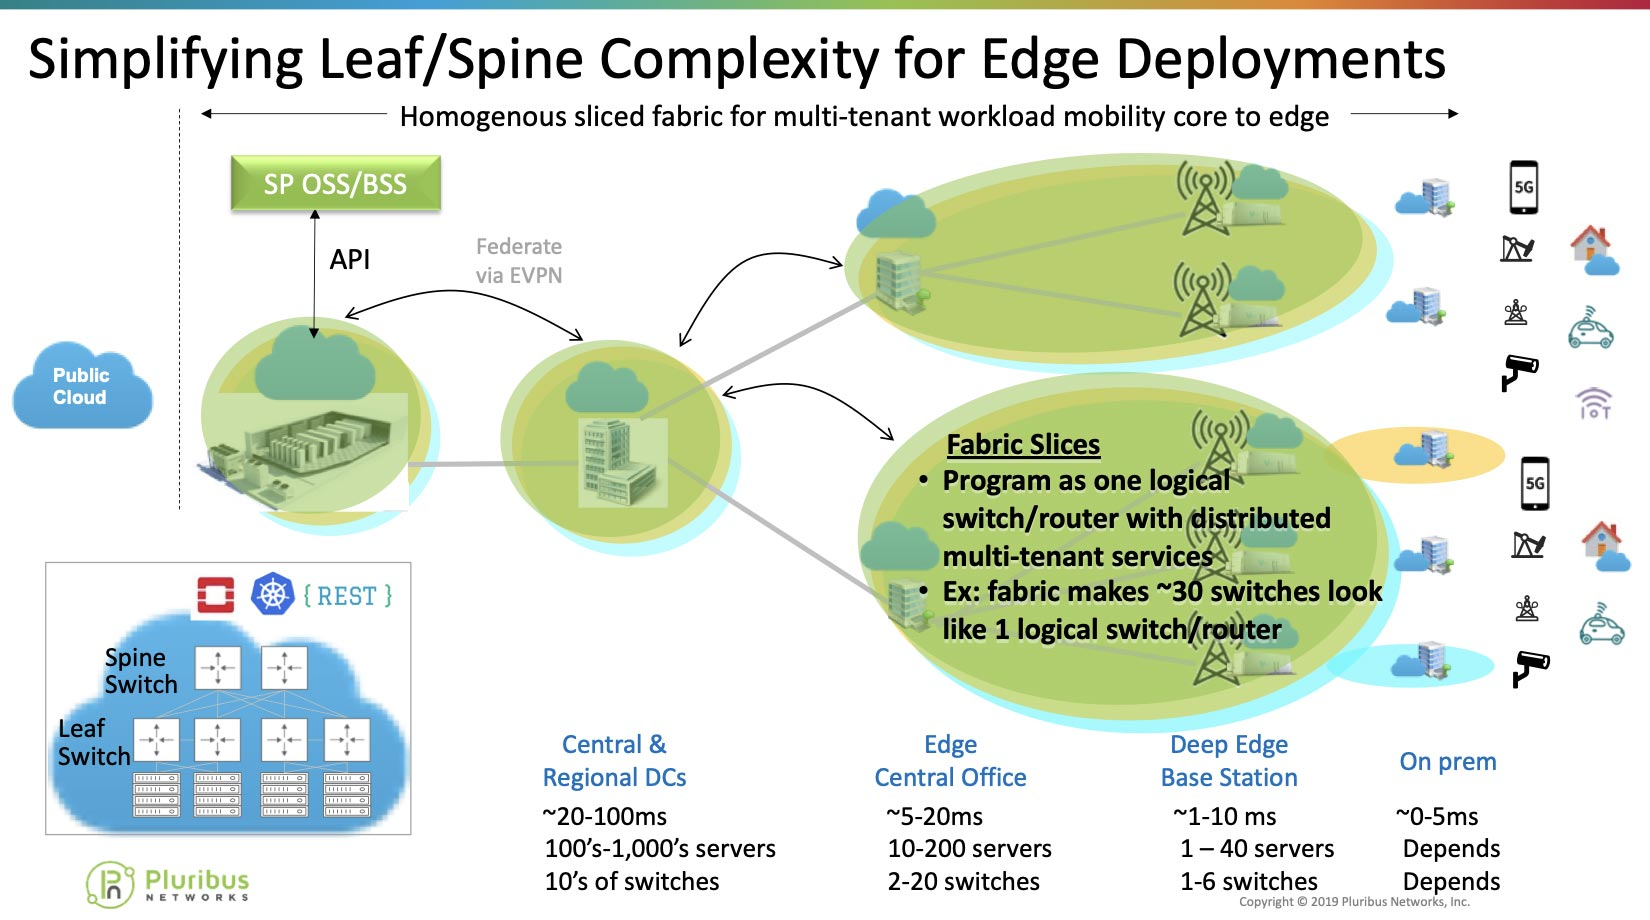 Simplifying Leaf/Spine Complexities for Edge Deployments diagram